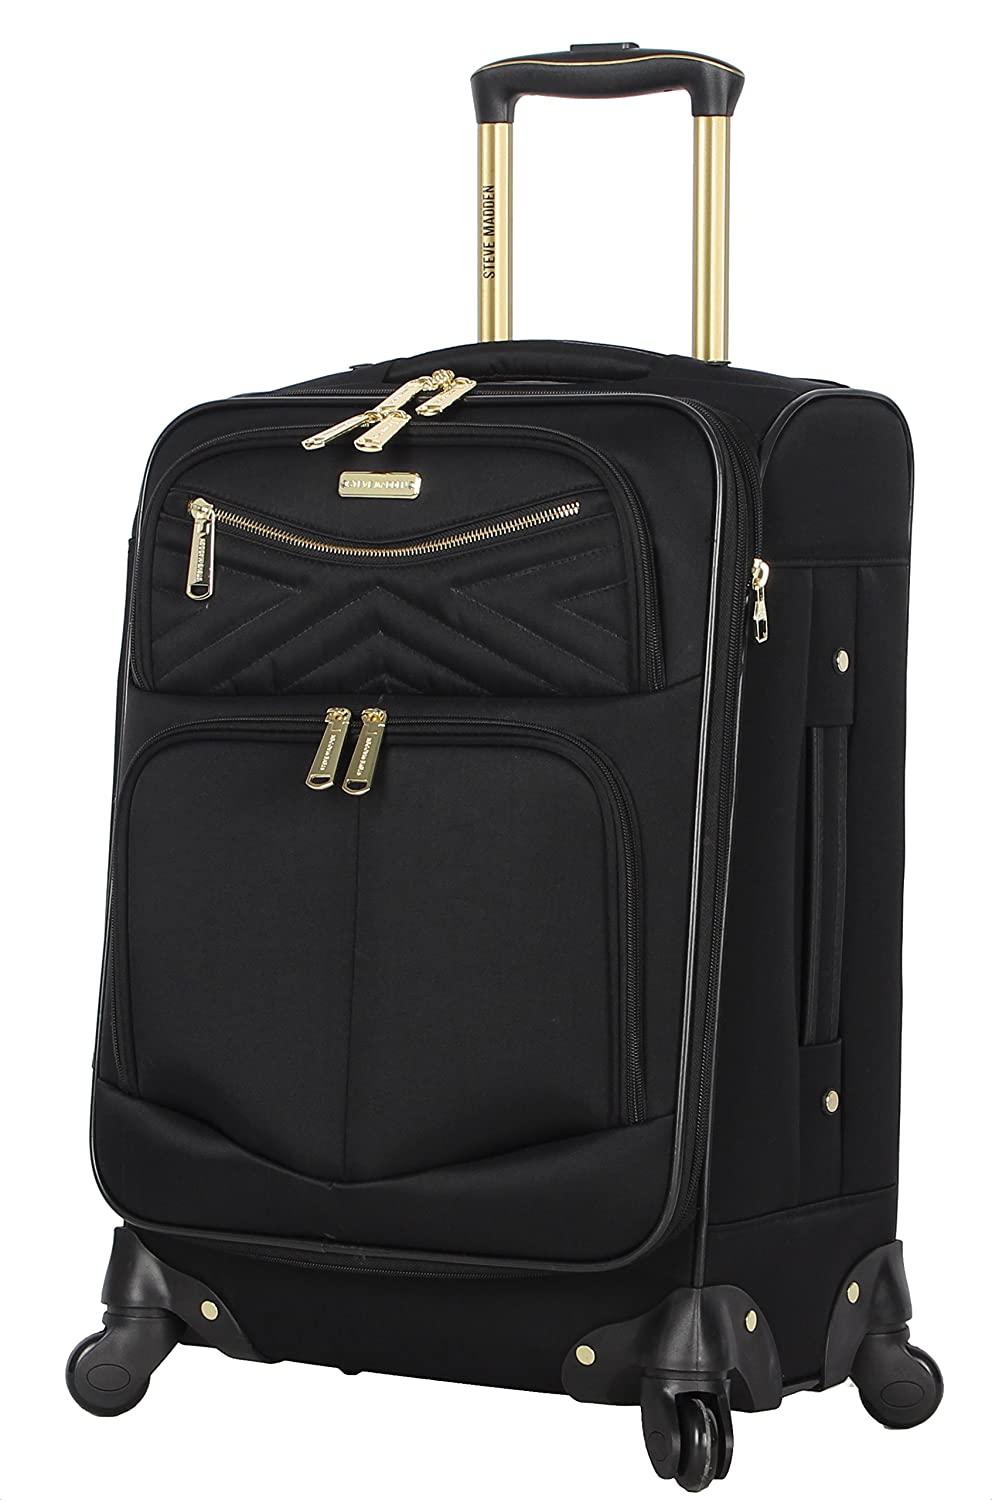 Steve Madden Luggage Carry On 20 Expandable Softside Suitcase With Spinner Wheels Rockstar Black, 20in